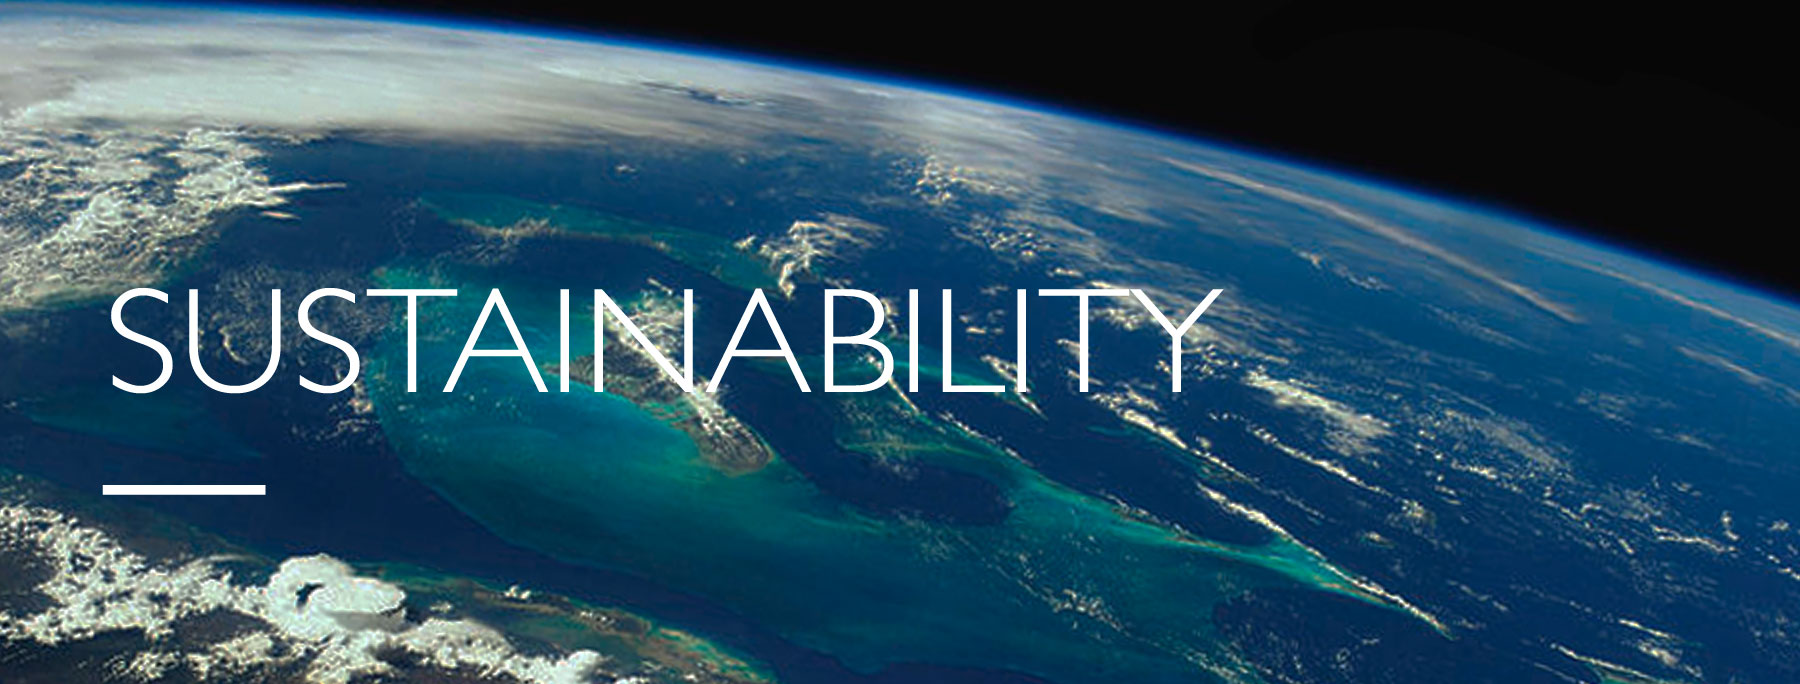 00 sustainability intro banners desktop eng v2